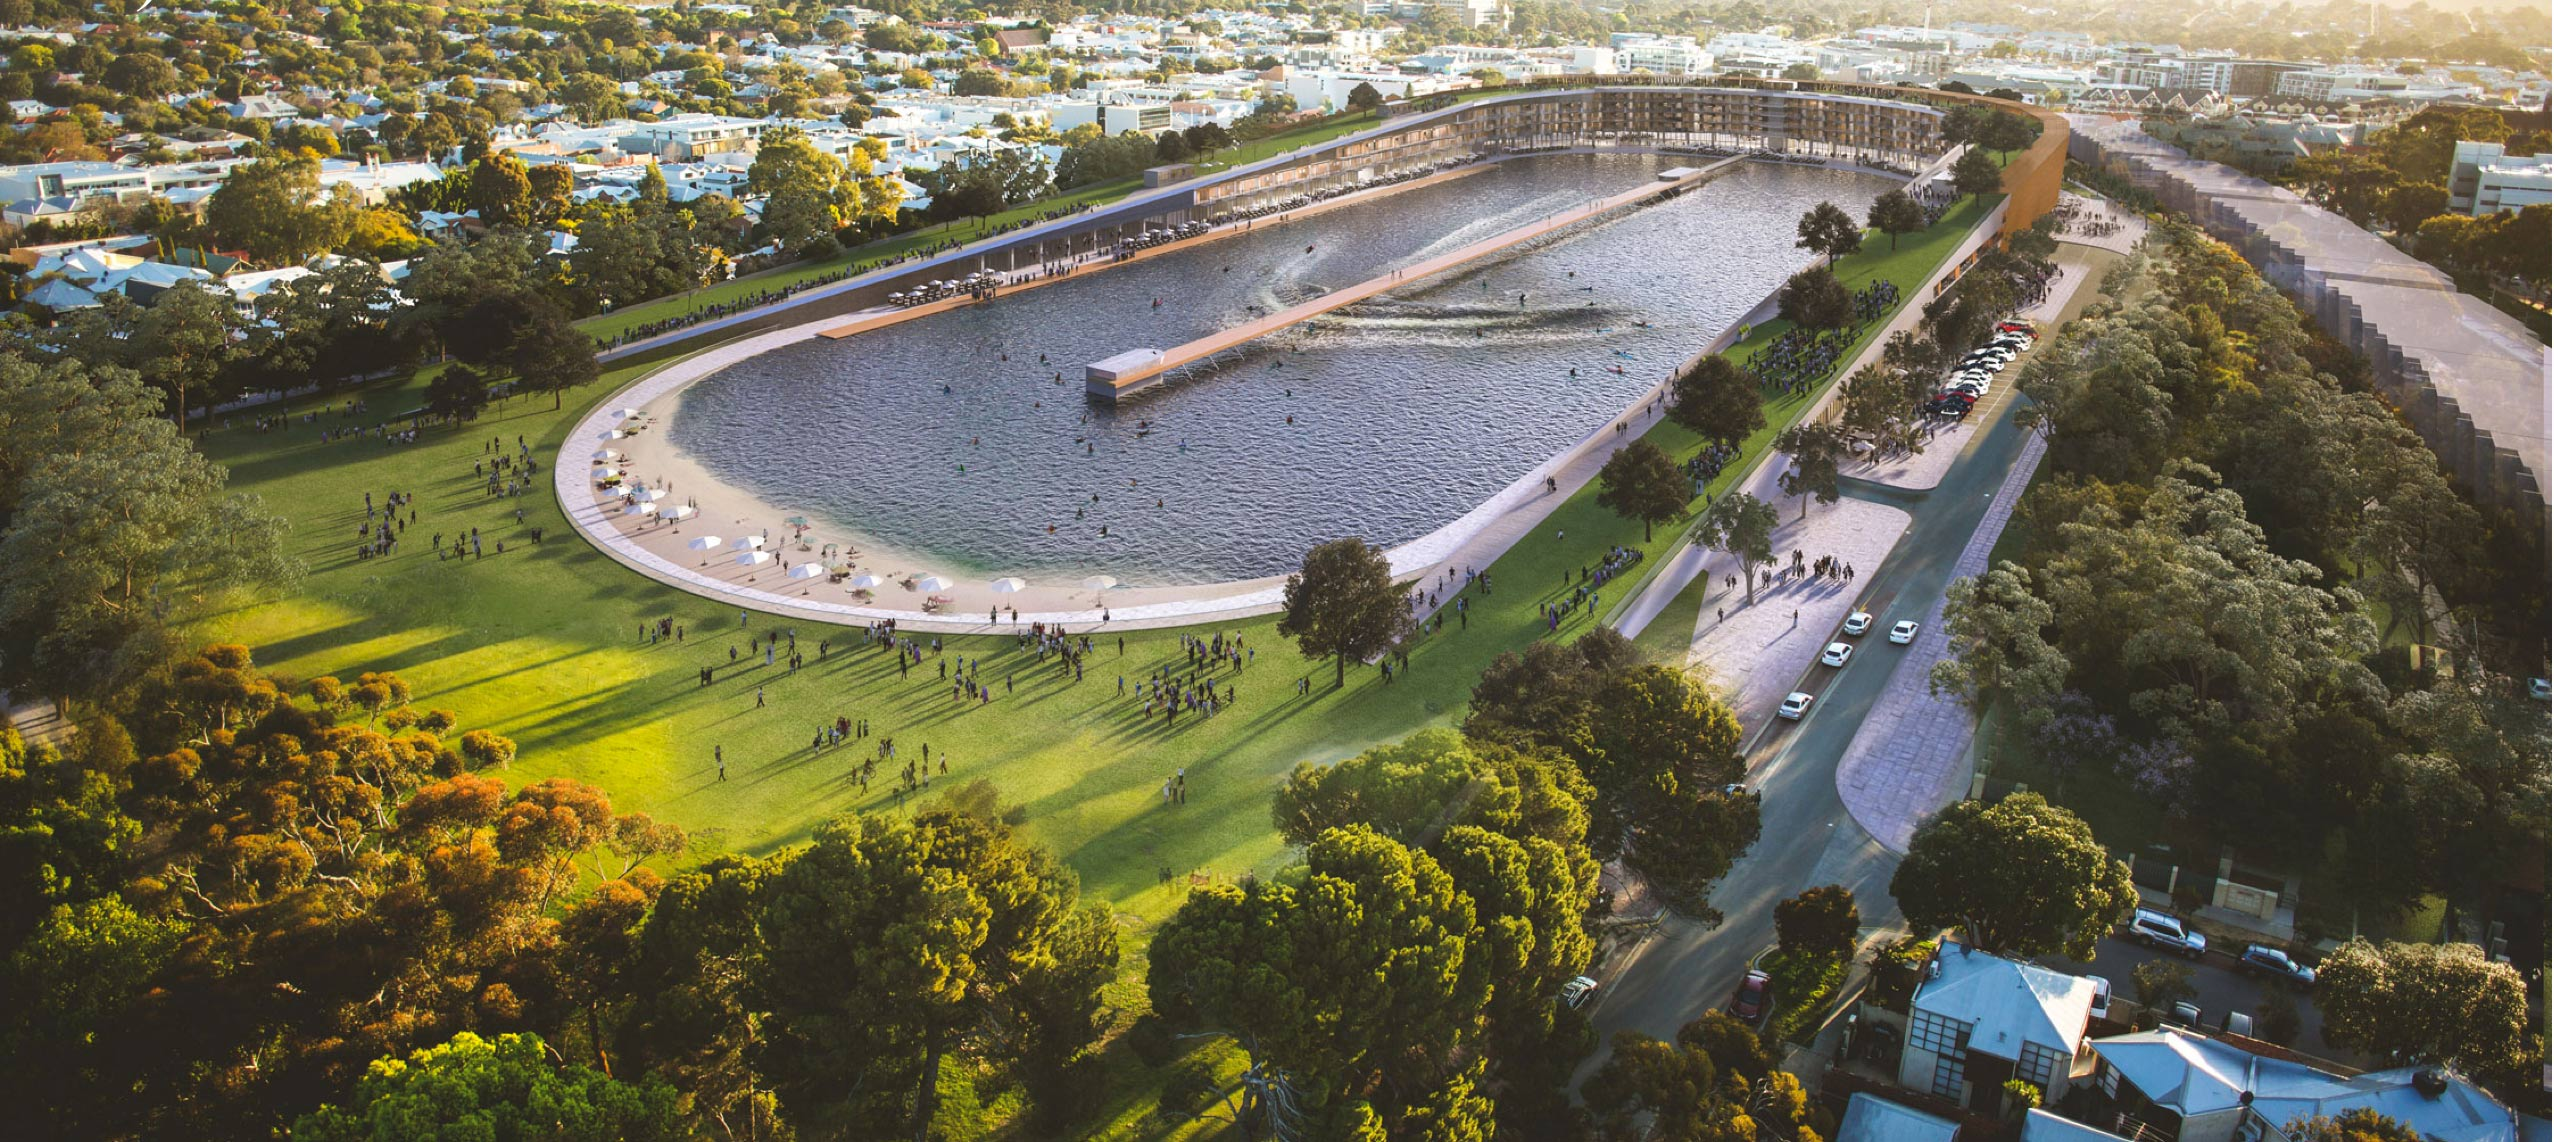 Artificial waves proposed in subiaco wa seabreeze for Architecture firms perth